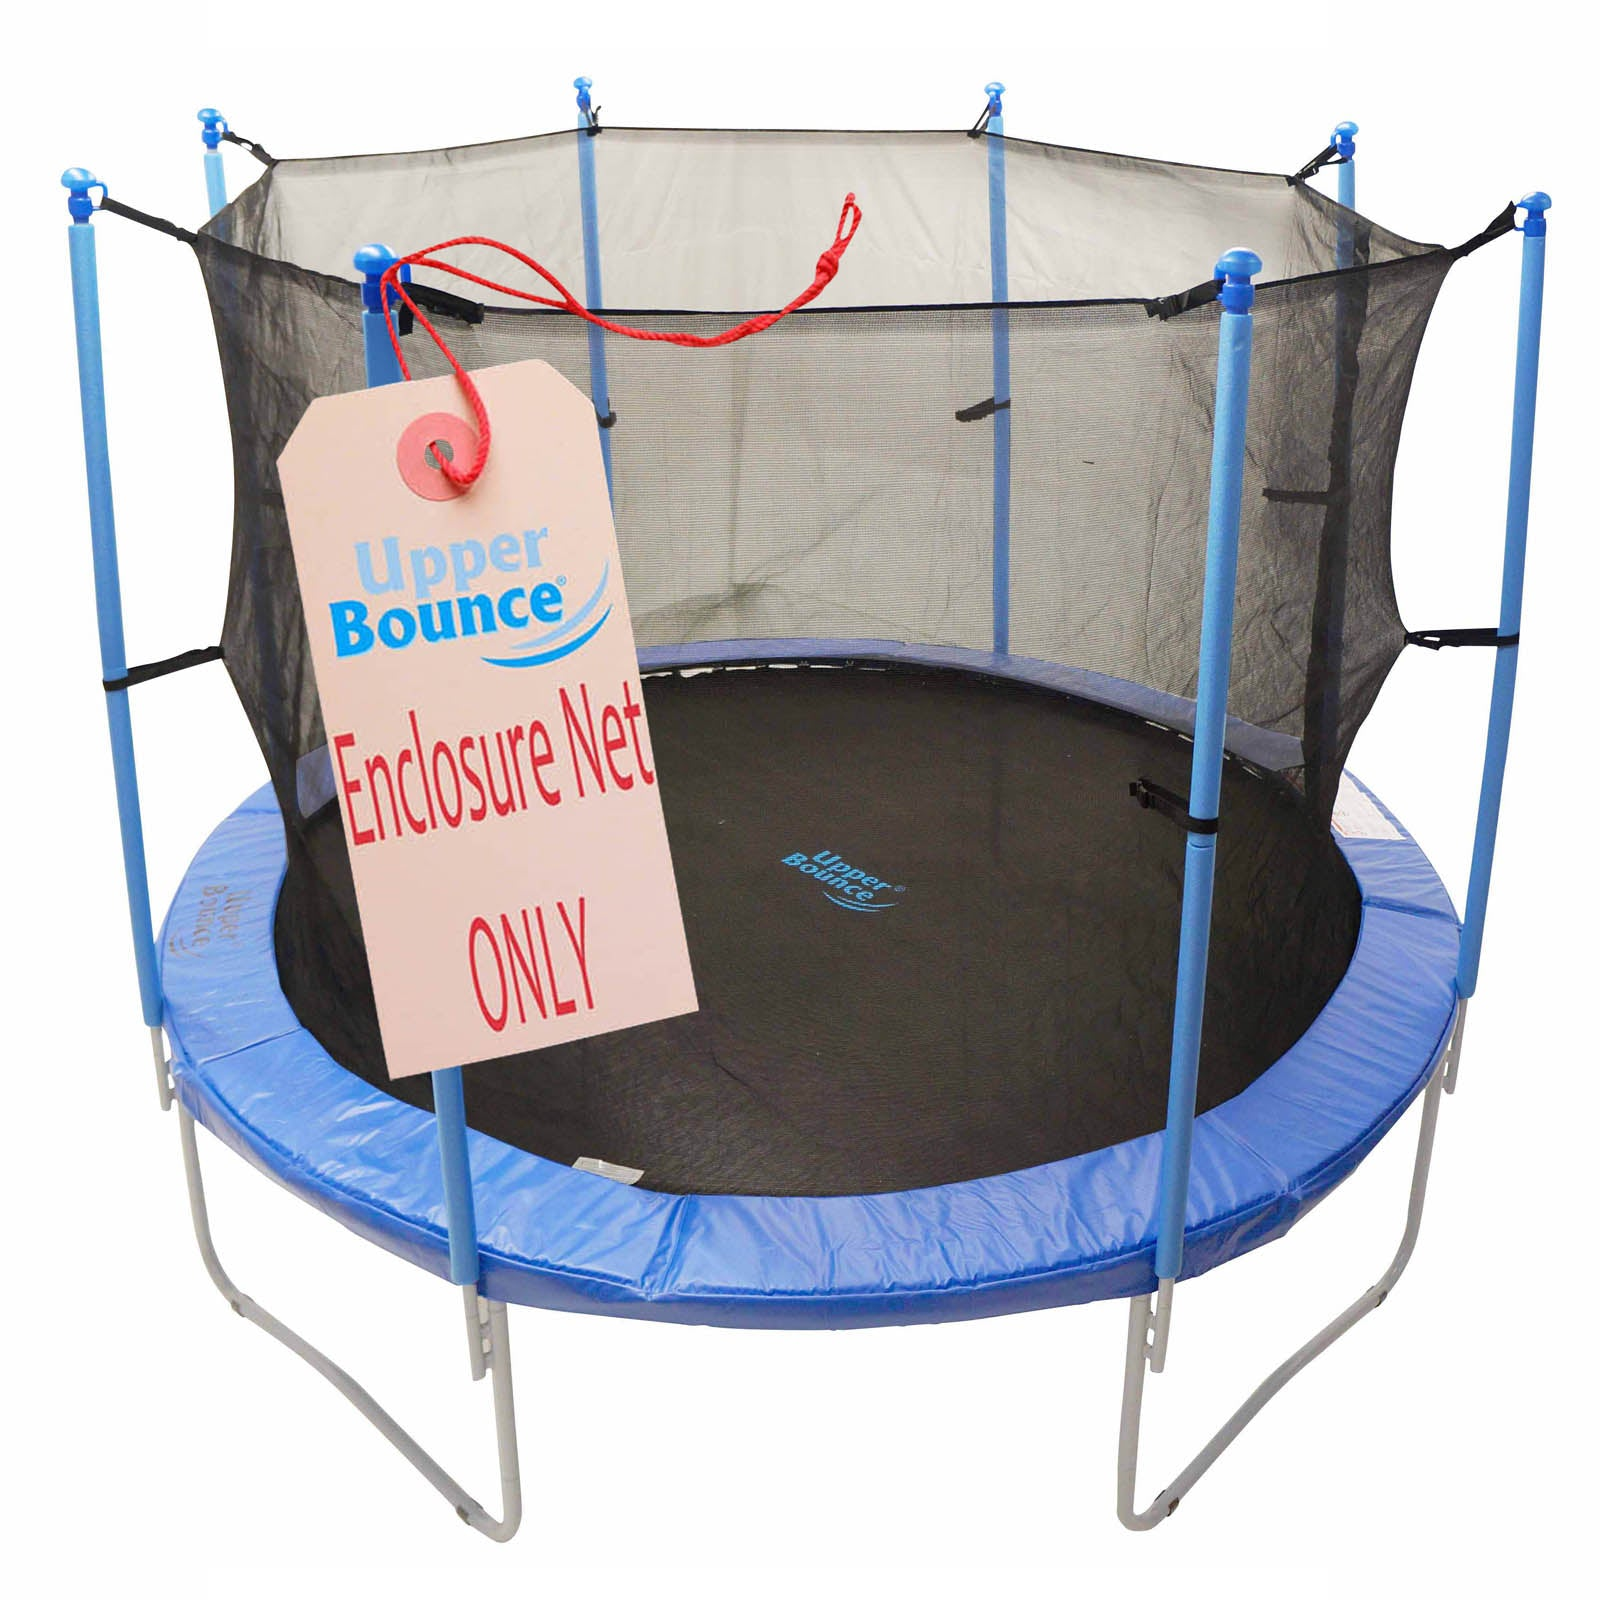 Trampoline Replacement Enclosure Net, Fits For 15 FT. Round Frames, With Adjustable Straps, Using 8 Poles or 4 Arches - onlinesportsmall